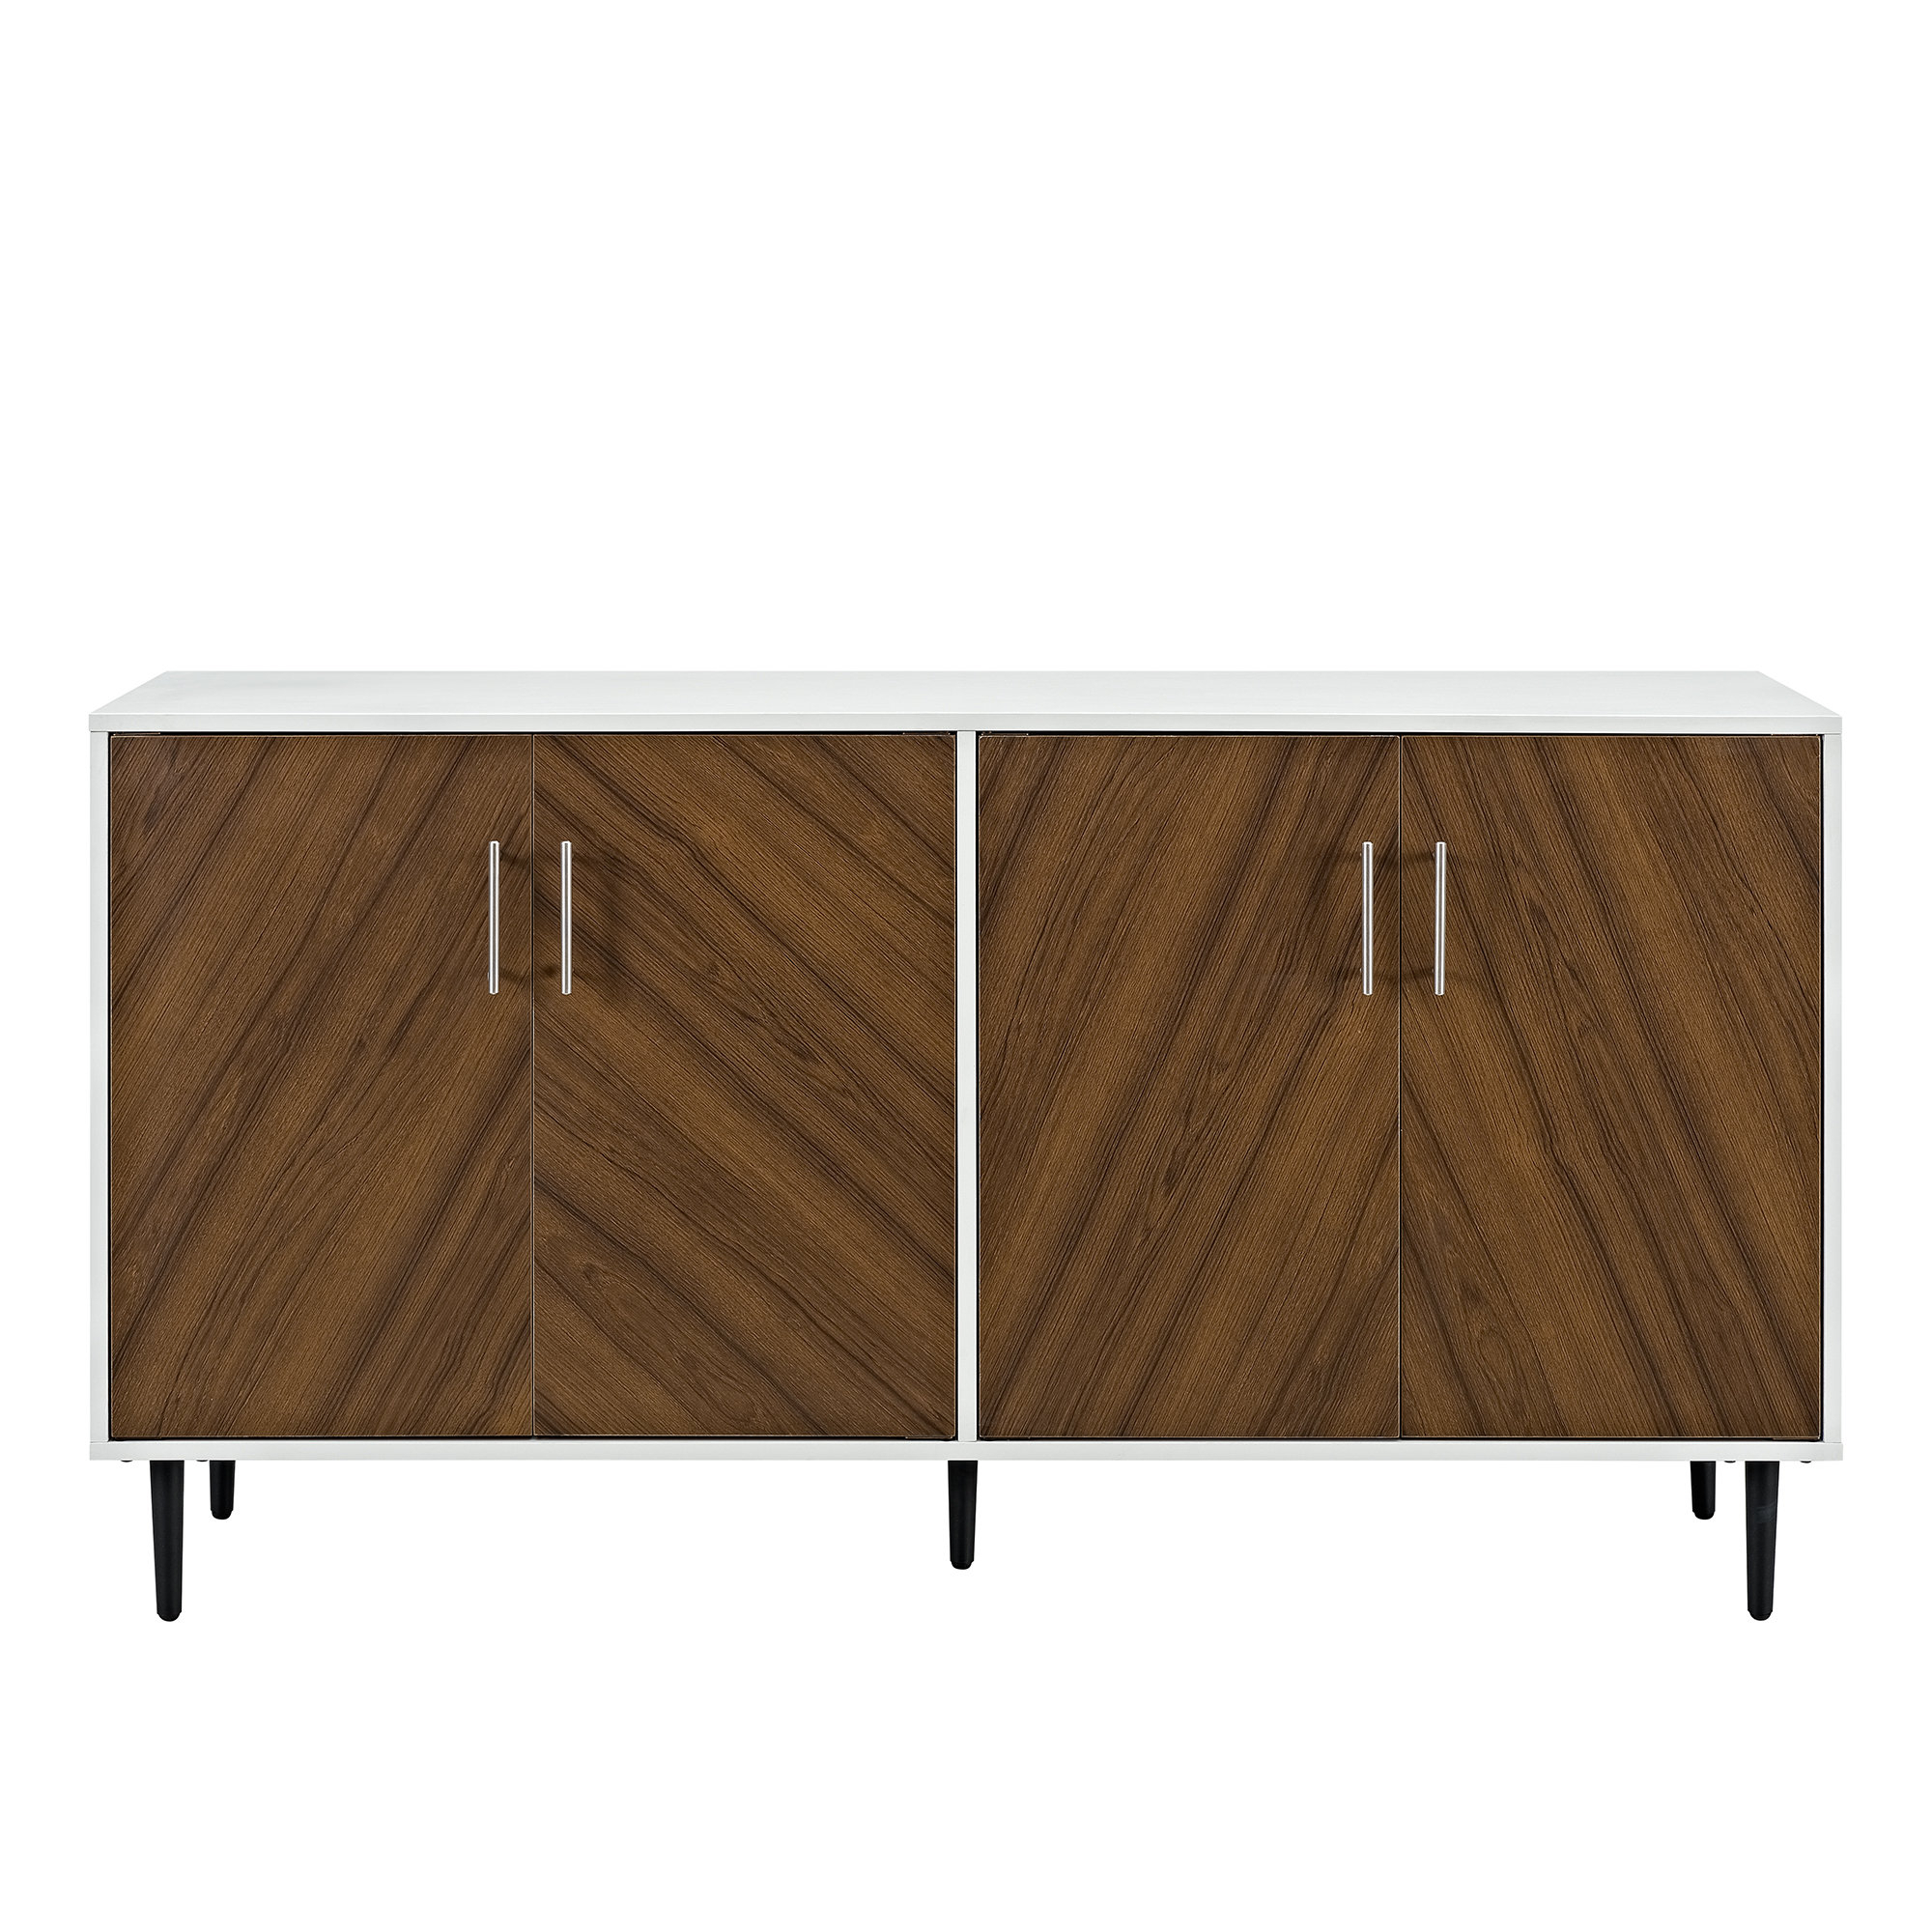 Modern & Contemporary Modern White Sideboards | Allmodern For Thite Sideboards (View 3 of 20)